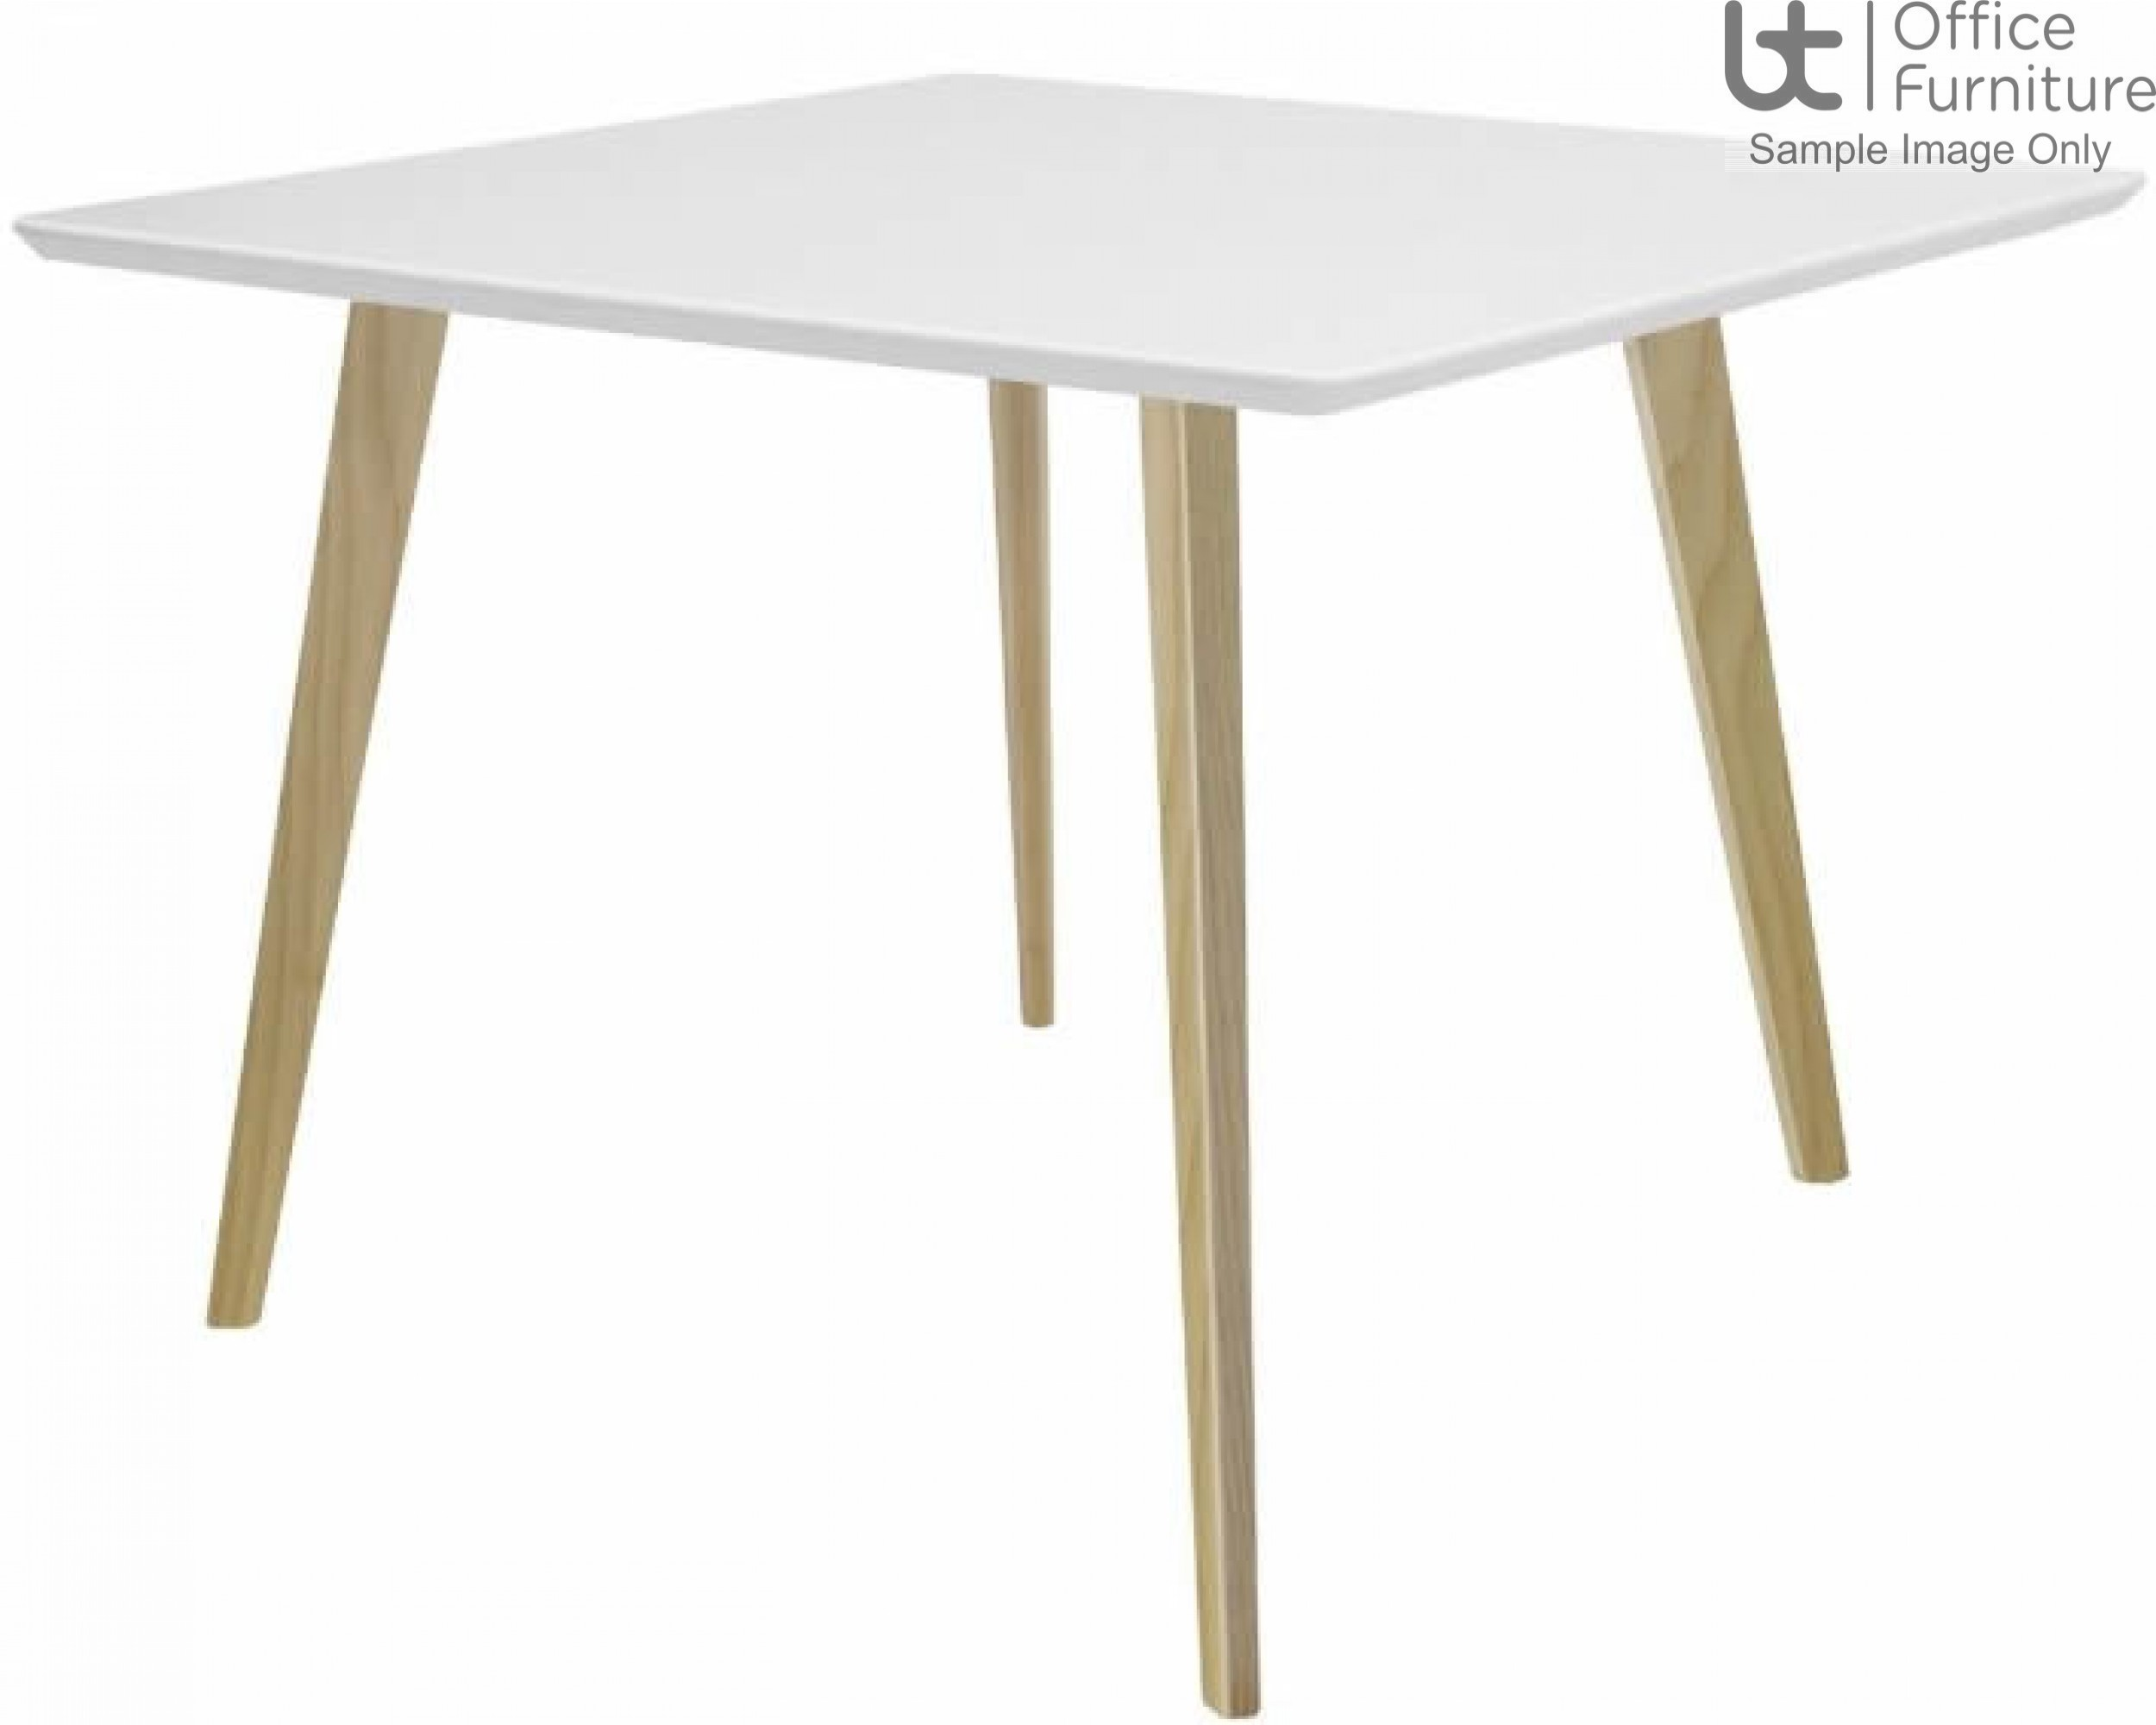 Elite Modular Meeting Square Table with Square Wooden Legs